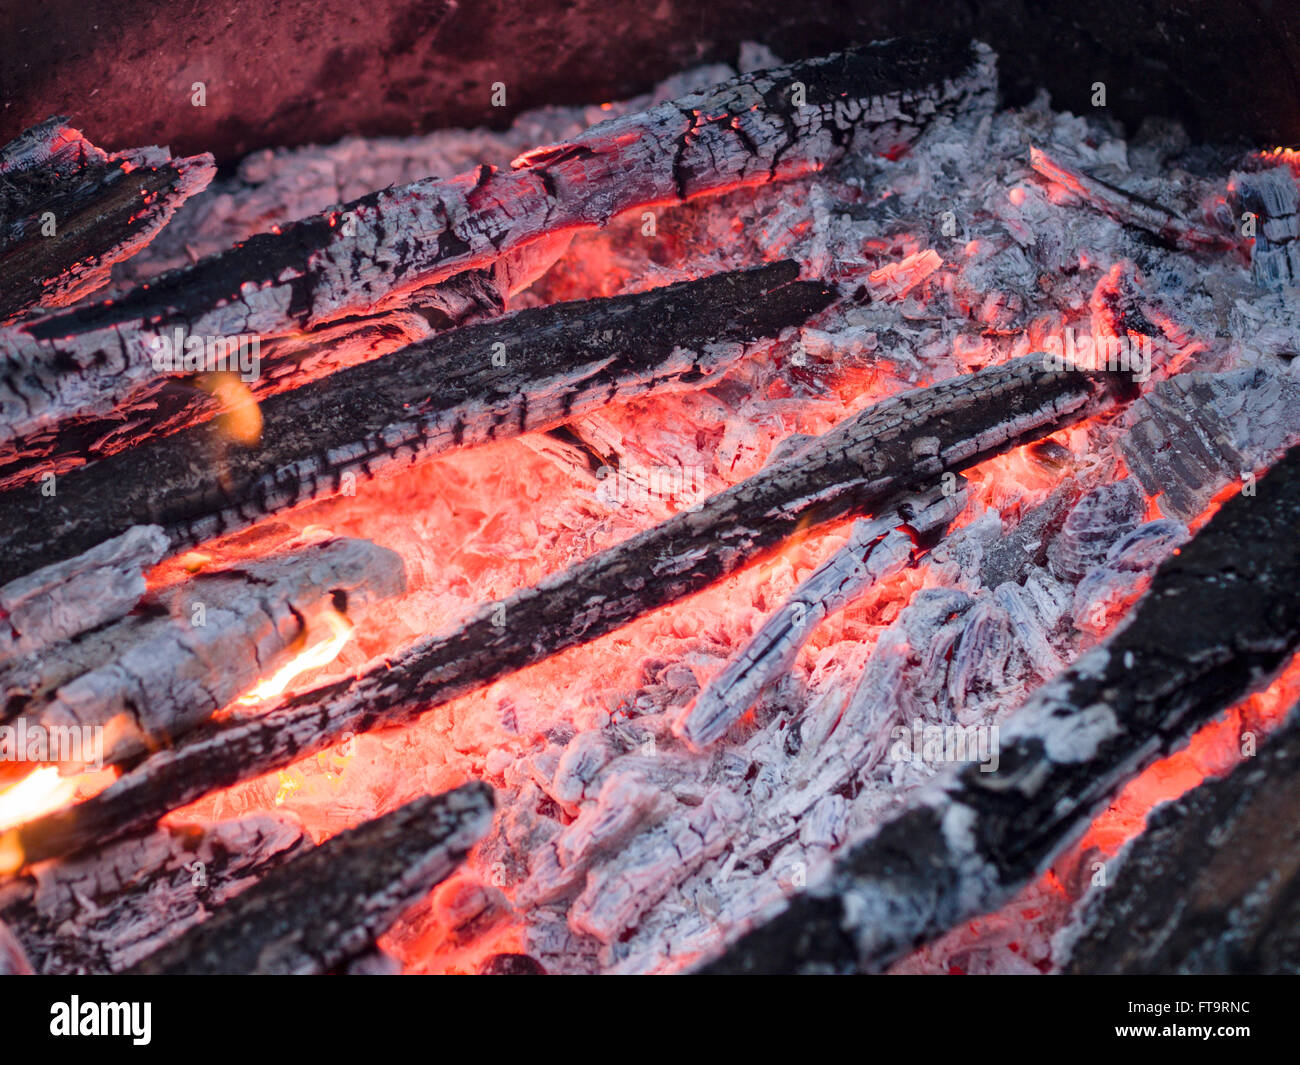 Glowing Embers in a hot wood fire. Ash covered wood glows red in this burned down fire. - Stock Image